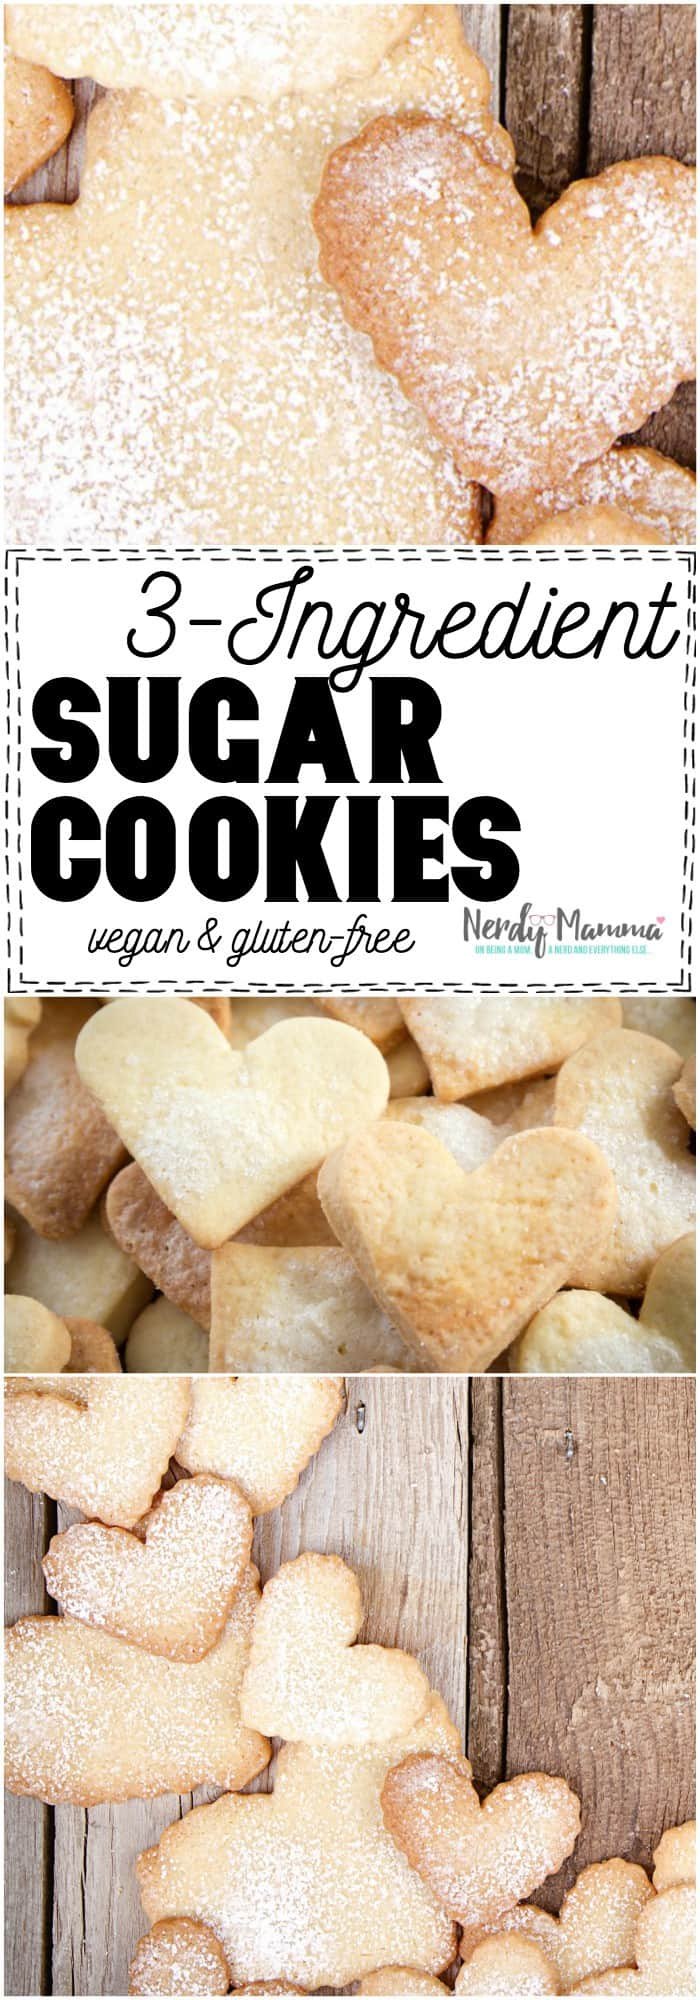 These super-simple Sugar Cookies are INSANE. I had no idea you could make such simple cookies. #cookie #cookies #recipe #sugarcookies #3-ingredient #simperecipe #easyrecipe #yummy